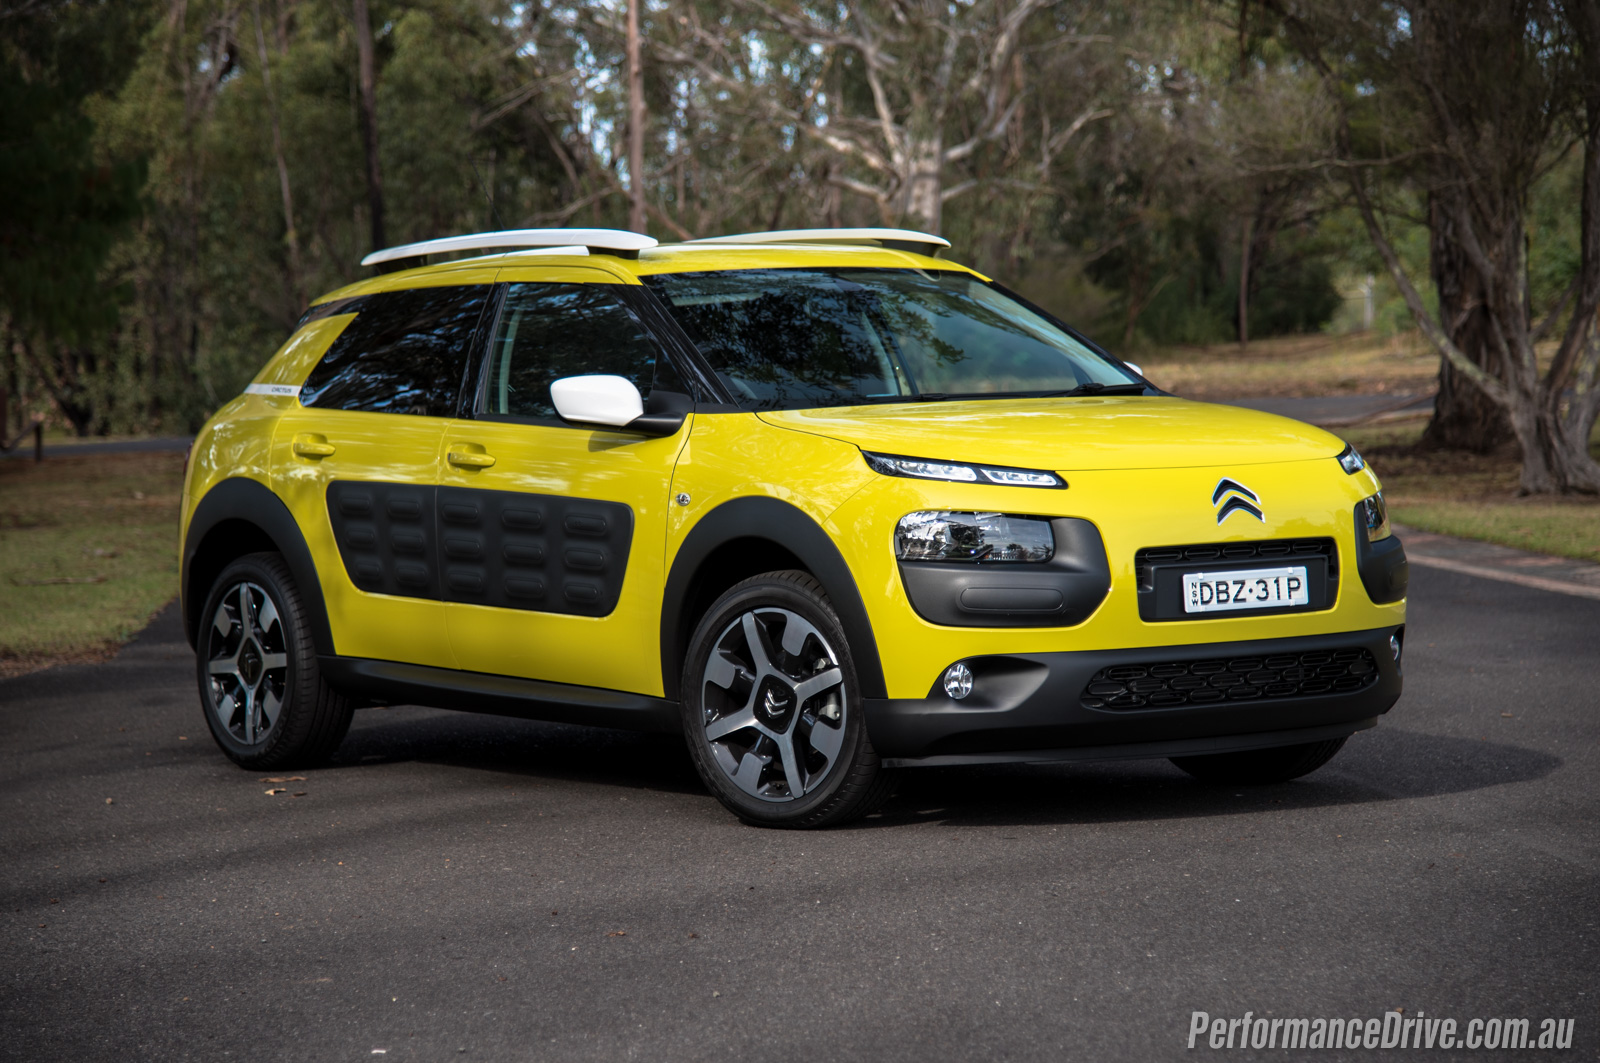 2016 citroen c4 cactus diesel review video performancedrive. Black Bedroom Furniture Sets. Home Design Ideas